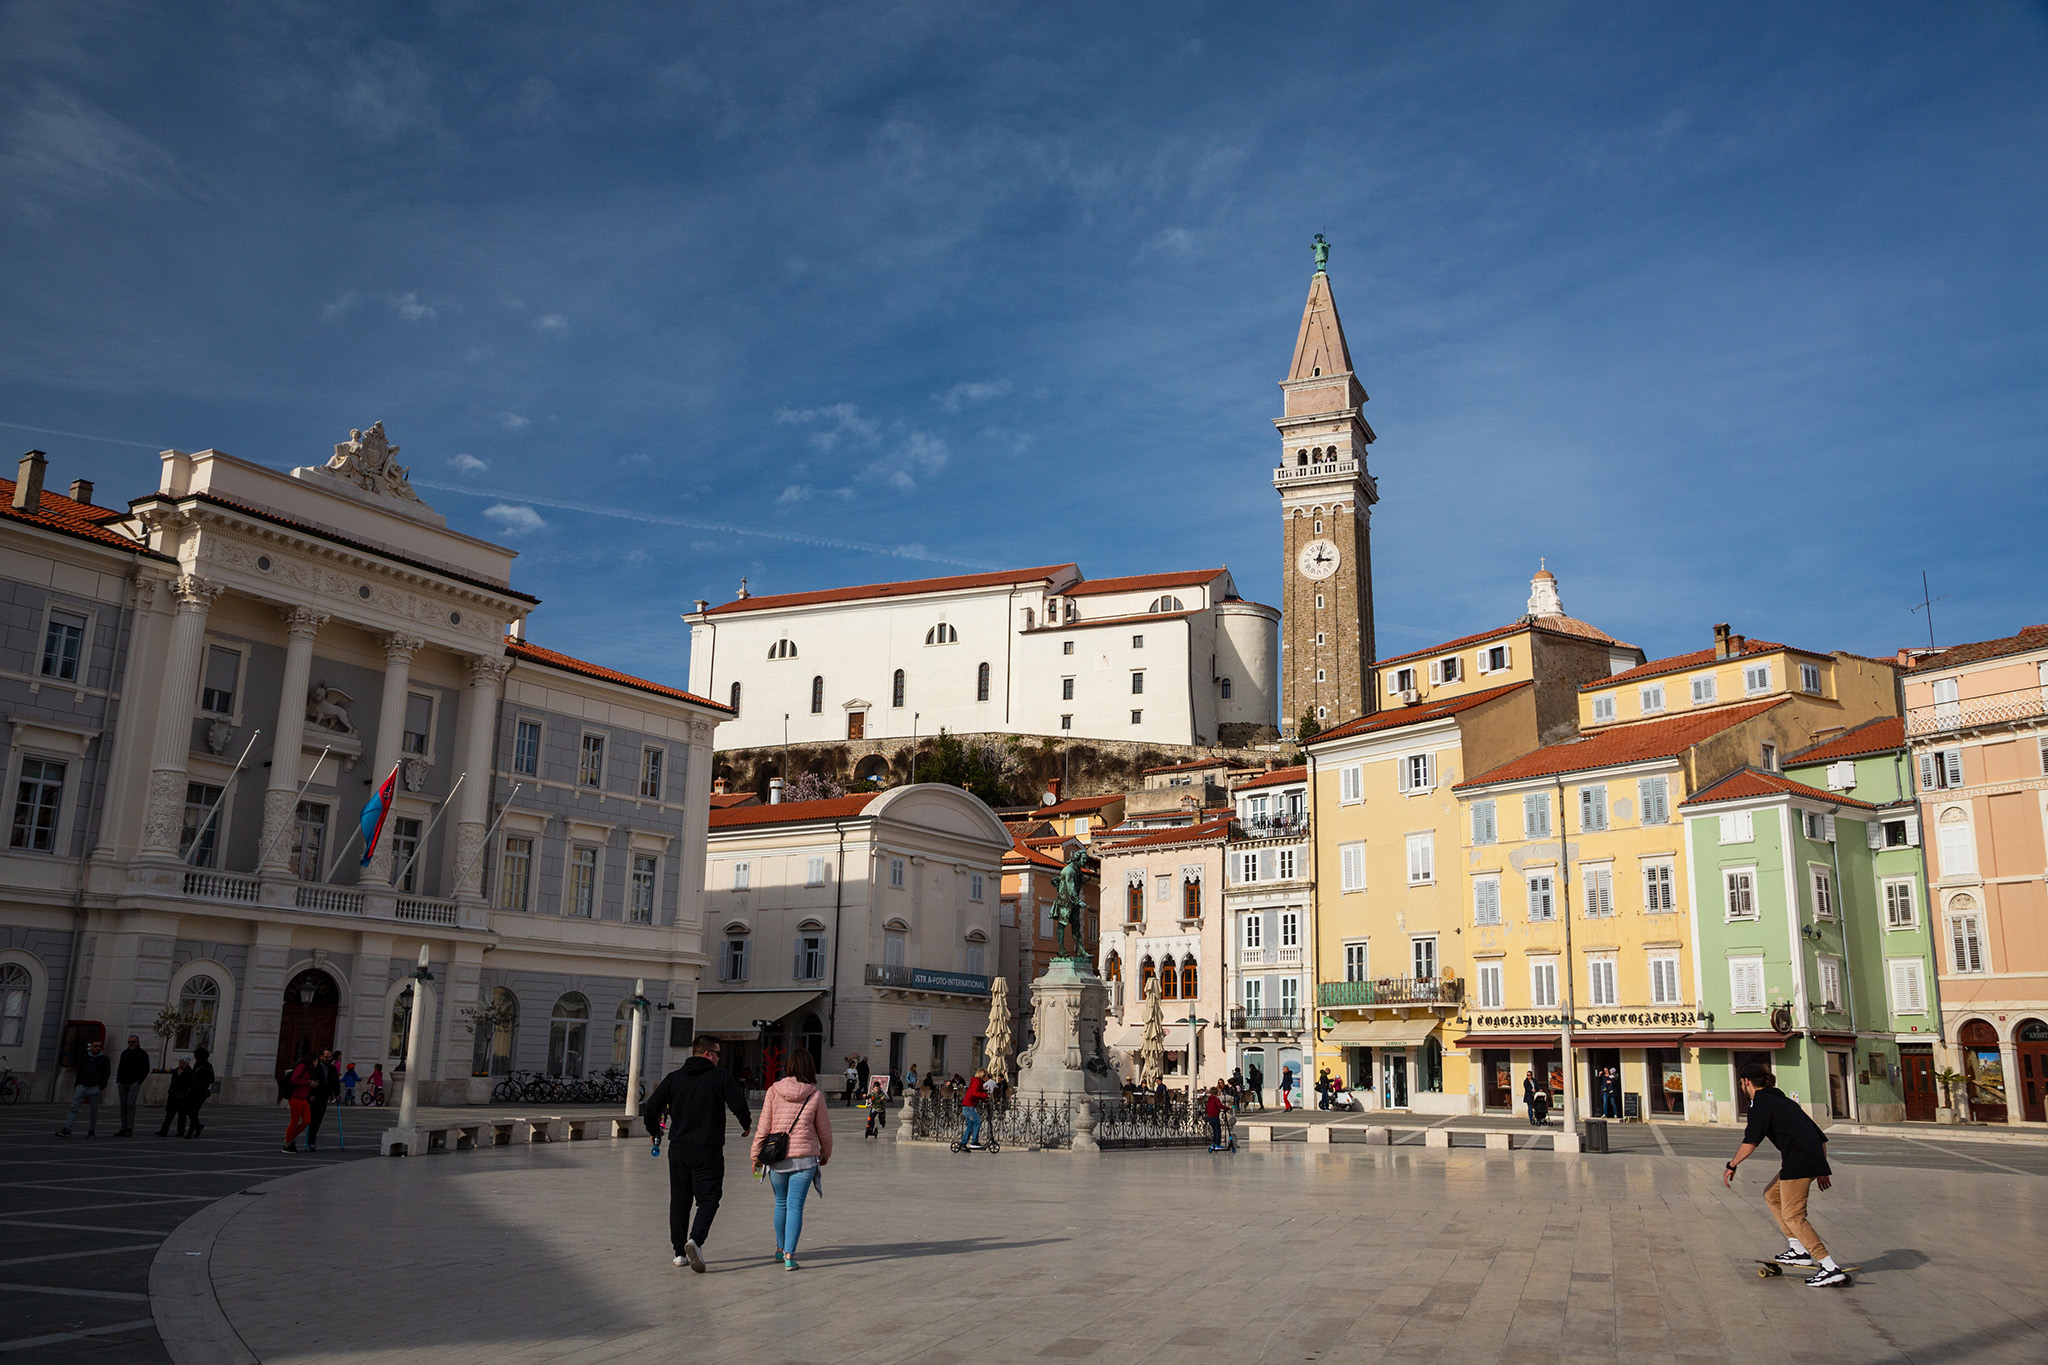 Tartini Square in Piran, Slovenia